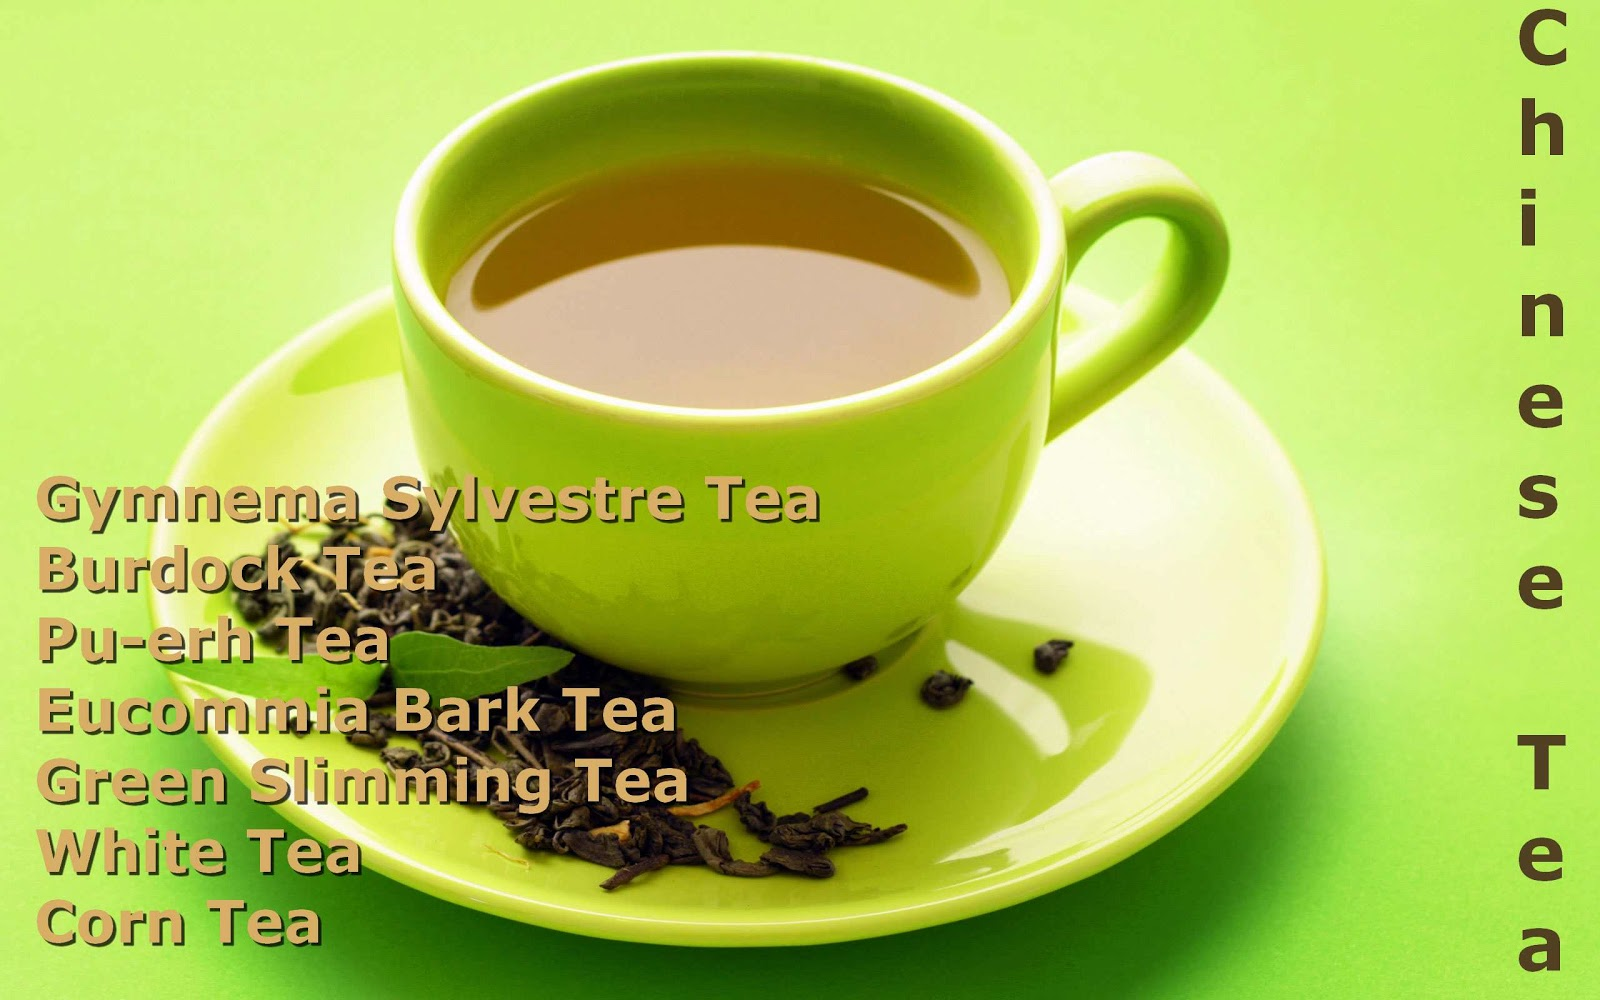 Chinese herbal tea diarrhea remedy